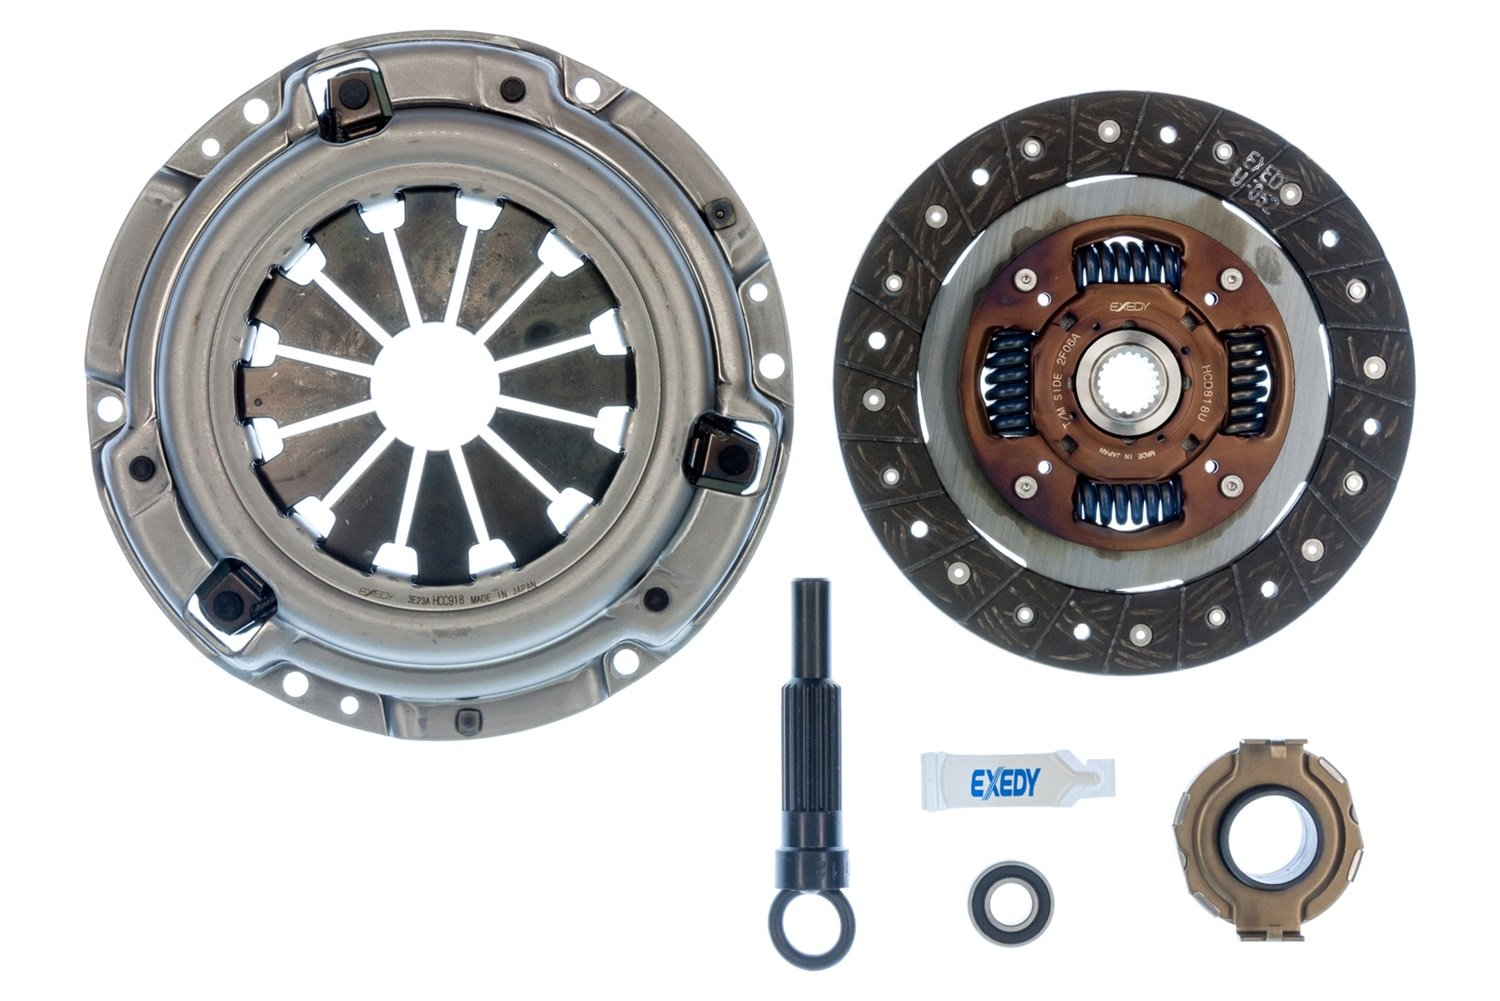 amazon com exedy khc08 oem replacement clutch kit automotive rh amazon com Acura RSX Type S Acura RSX Owner's Manual